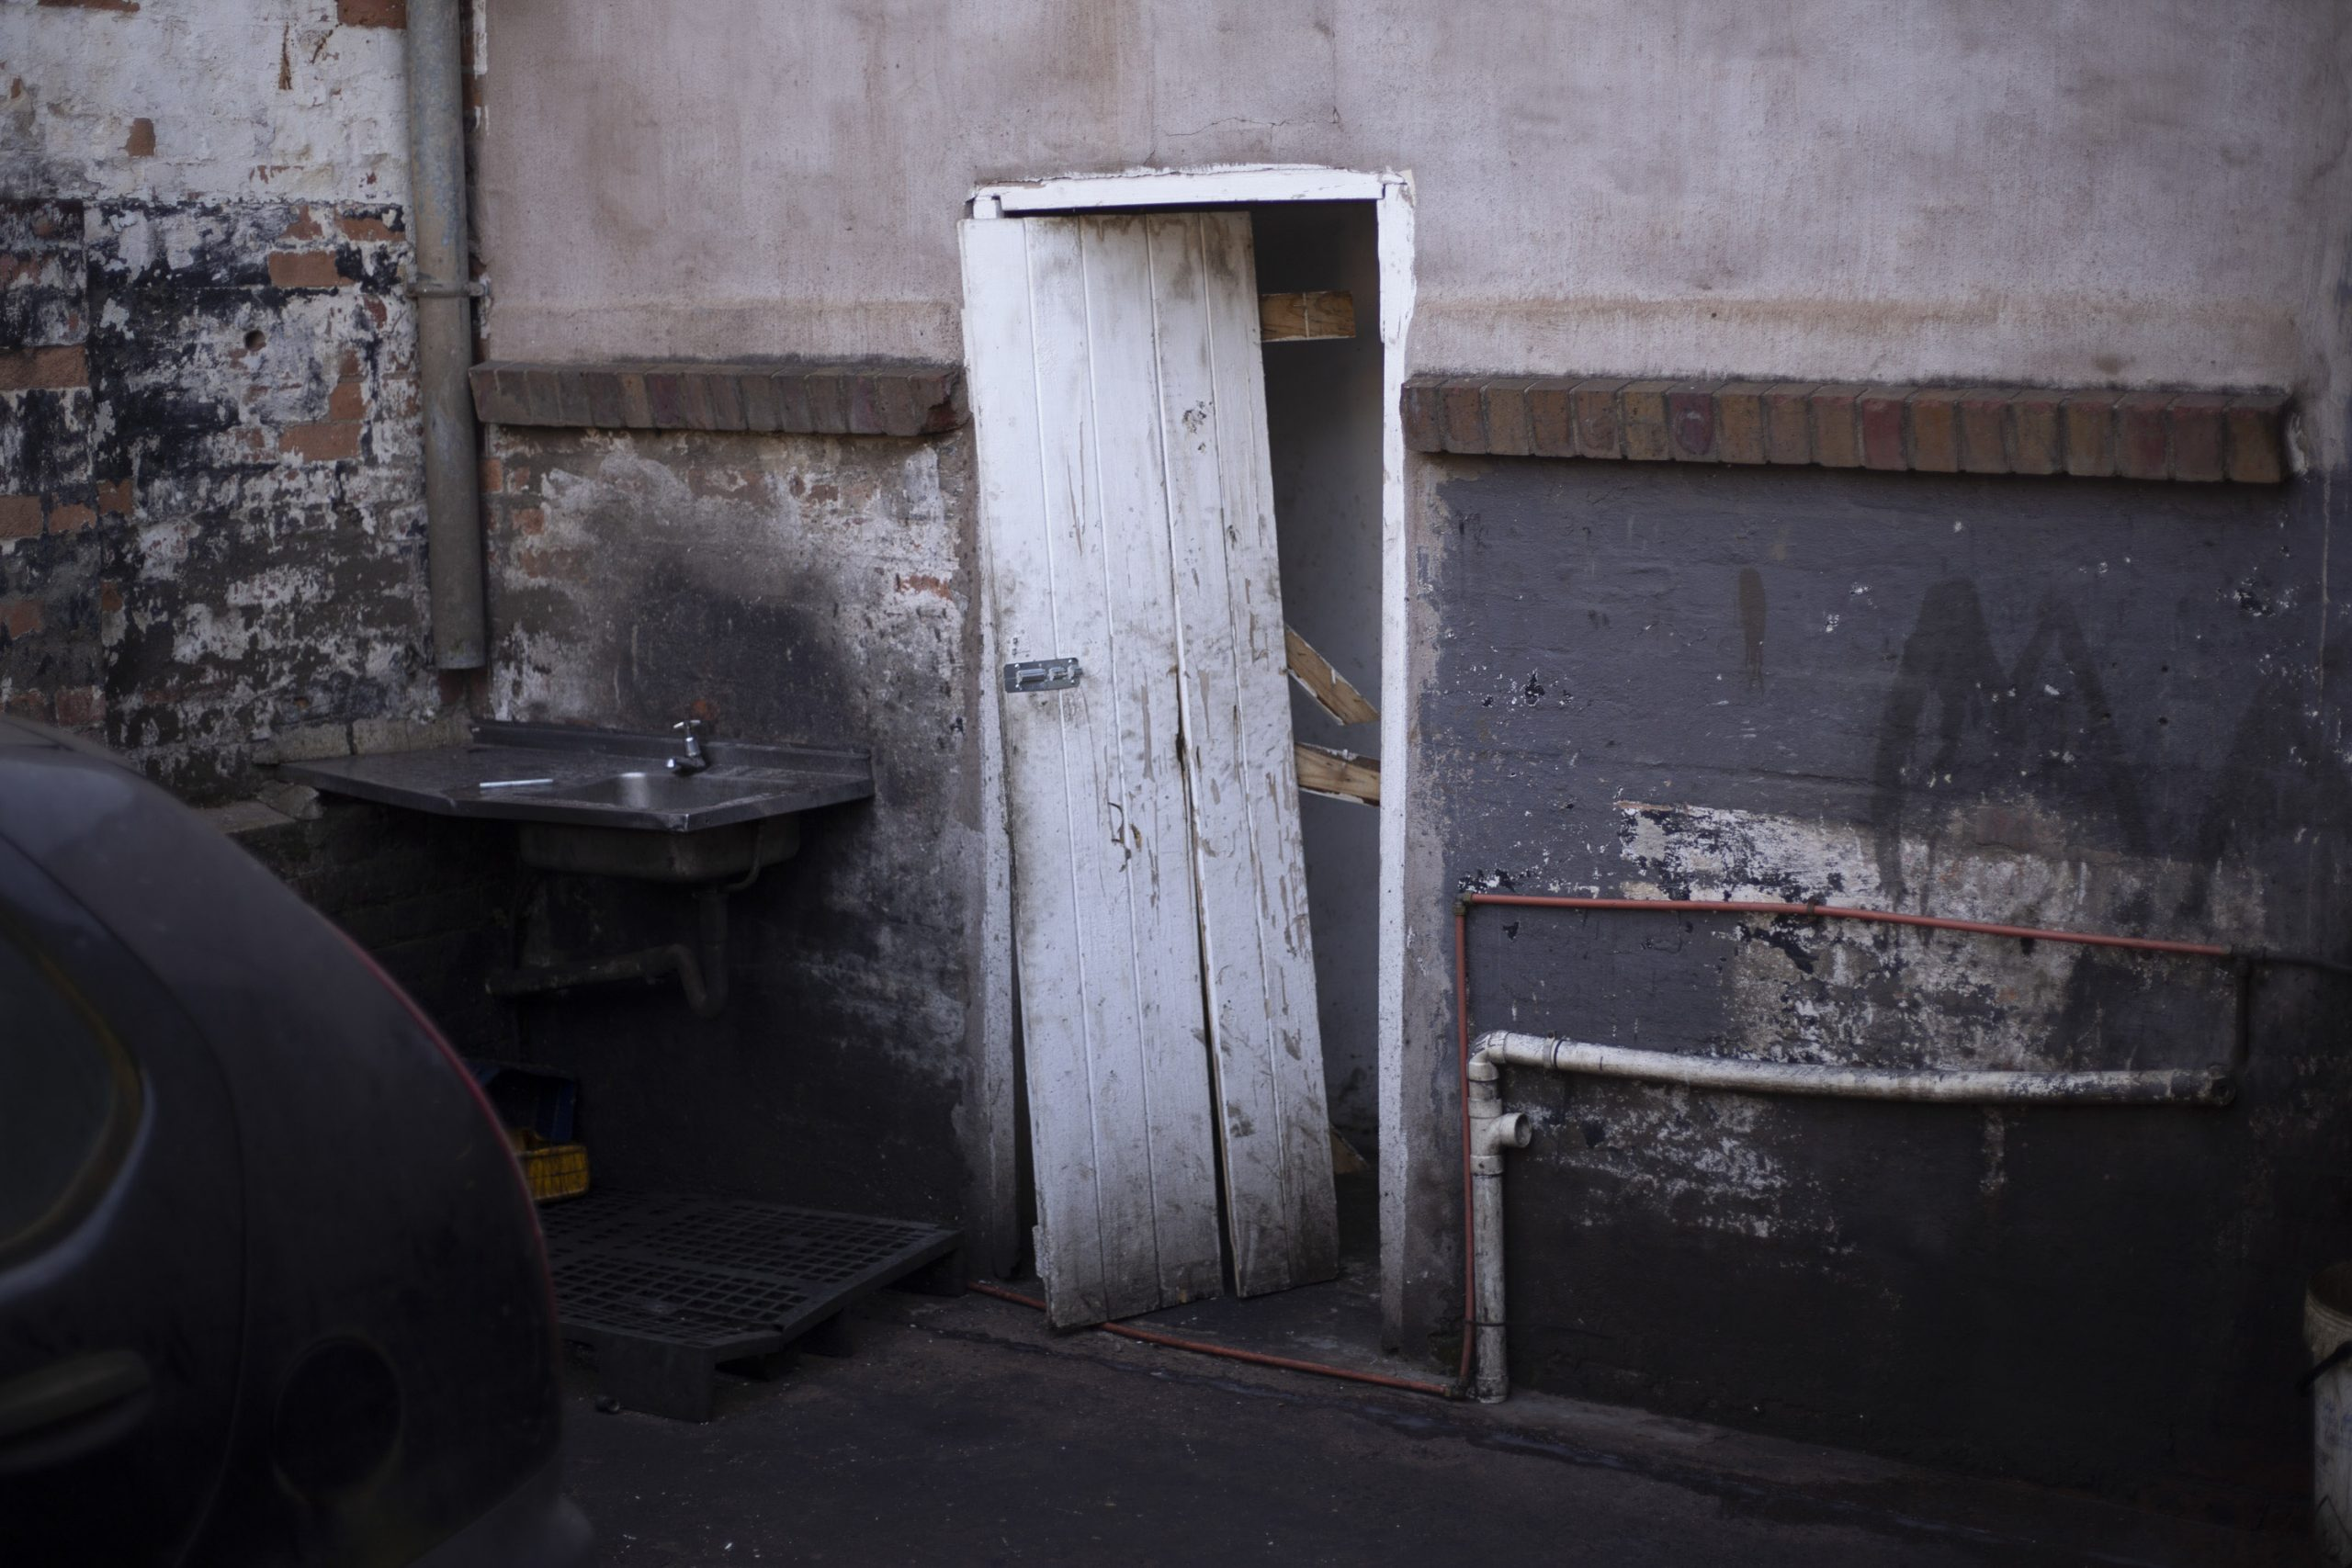 16 July 2020: A police officer in plain clothes is alleged to have shot his way out of his hiding place in a bathroom at the back of a car repair workshop in Pietermaritzburg.